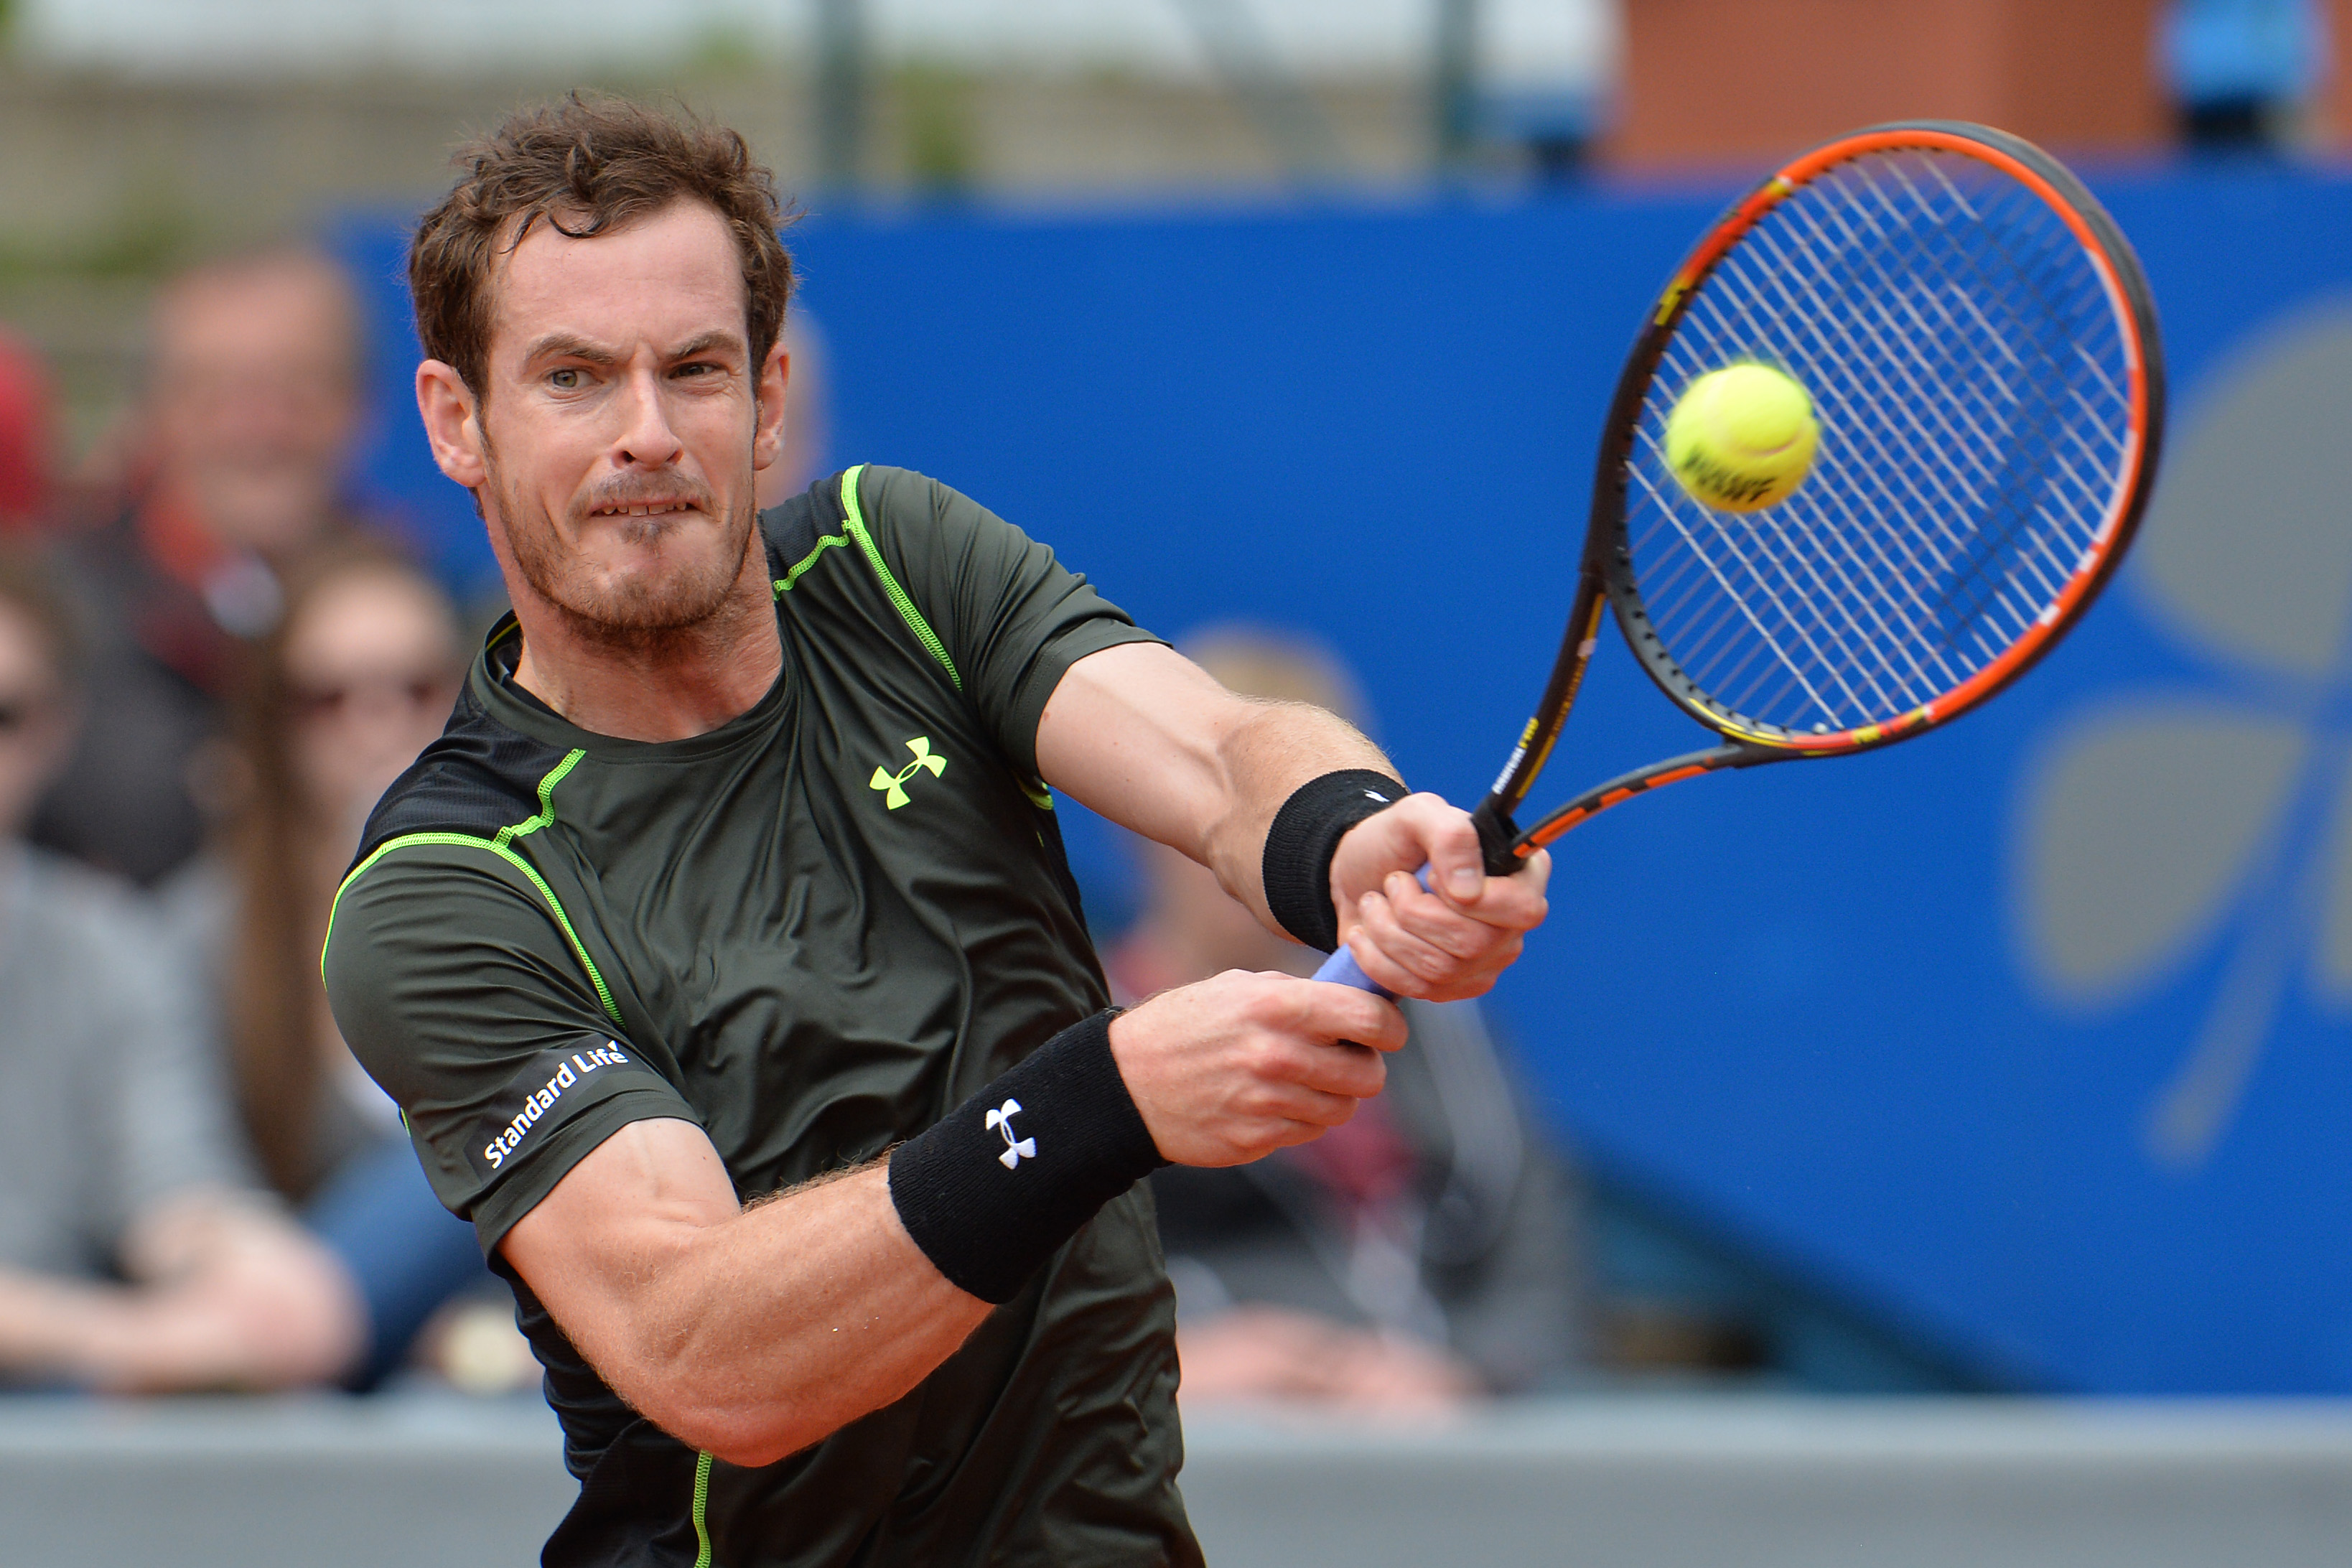 Britain's Andy Murray returns the ball to Germany's Philipp Kohlschreiber during the final match at the BMW Open tennis tournament in Munich, Germany, Monday, May. 4, 2015. (AP Photo/Kerstin Joensson)